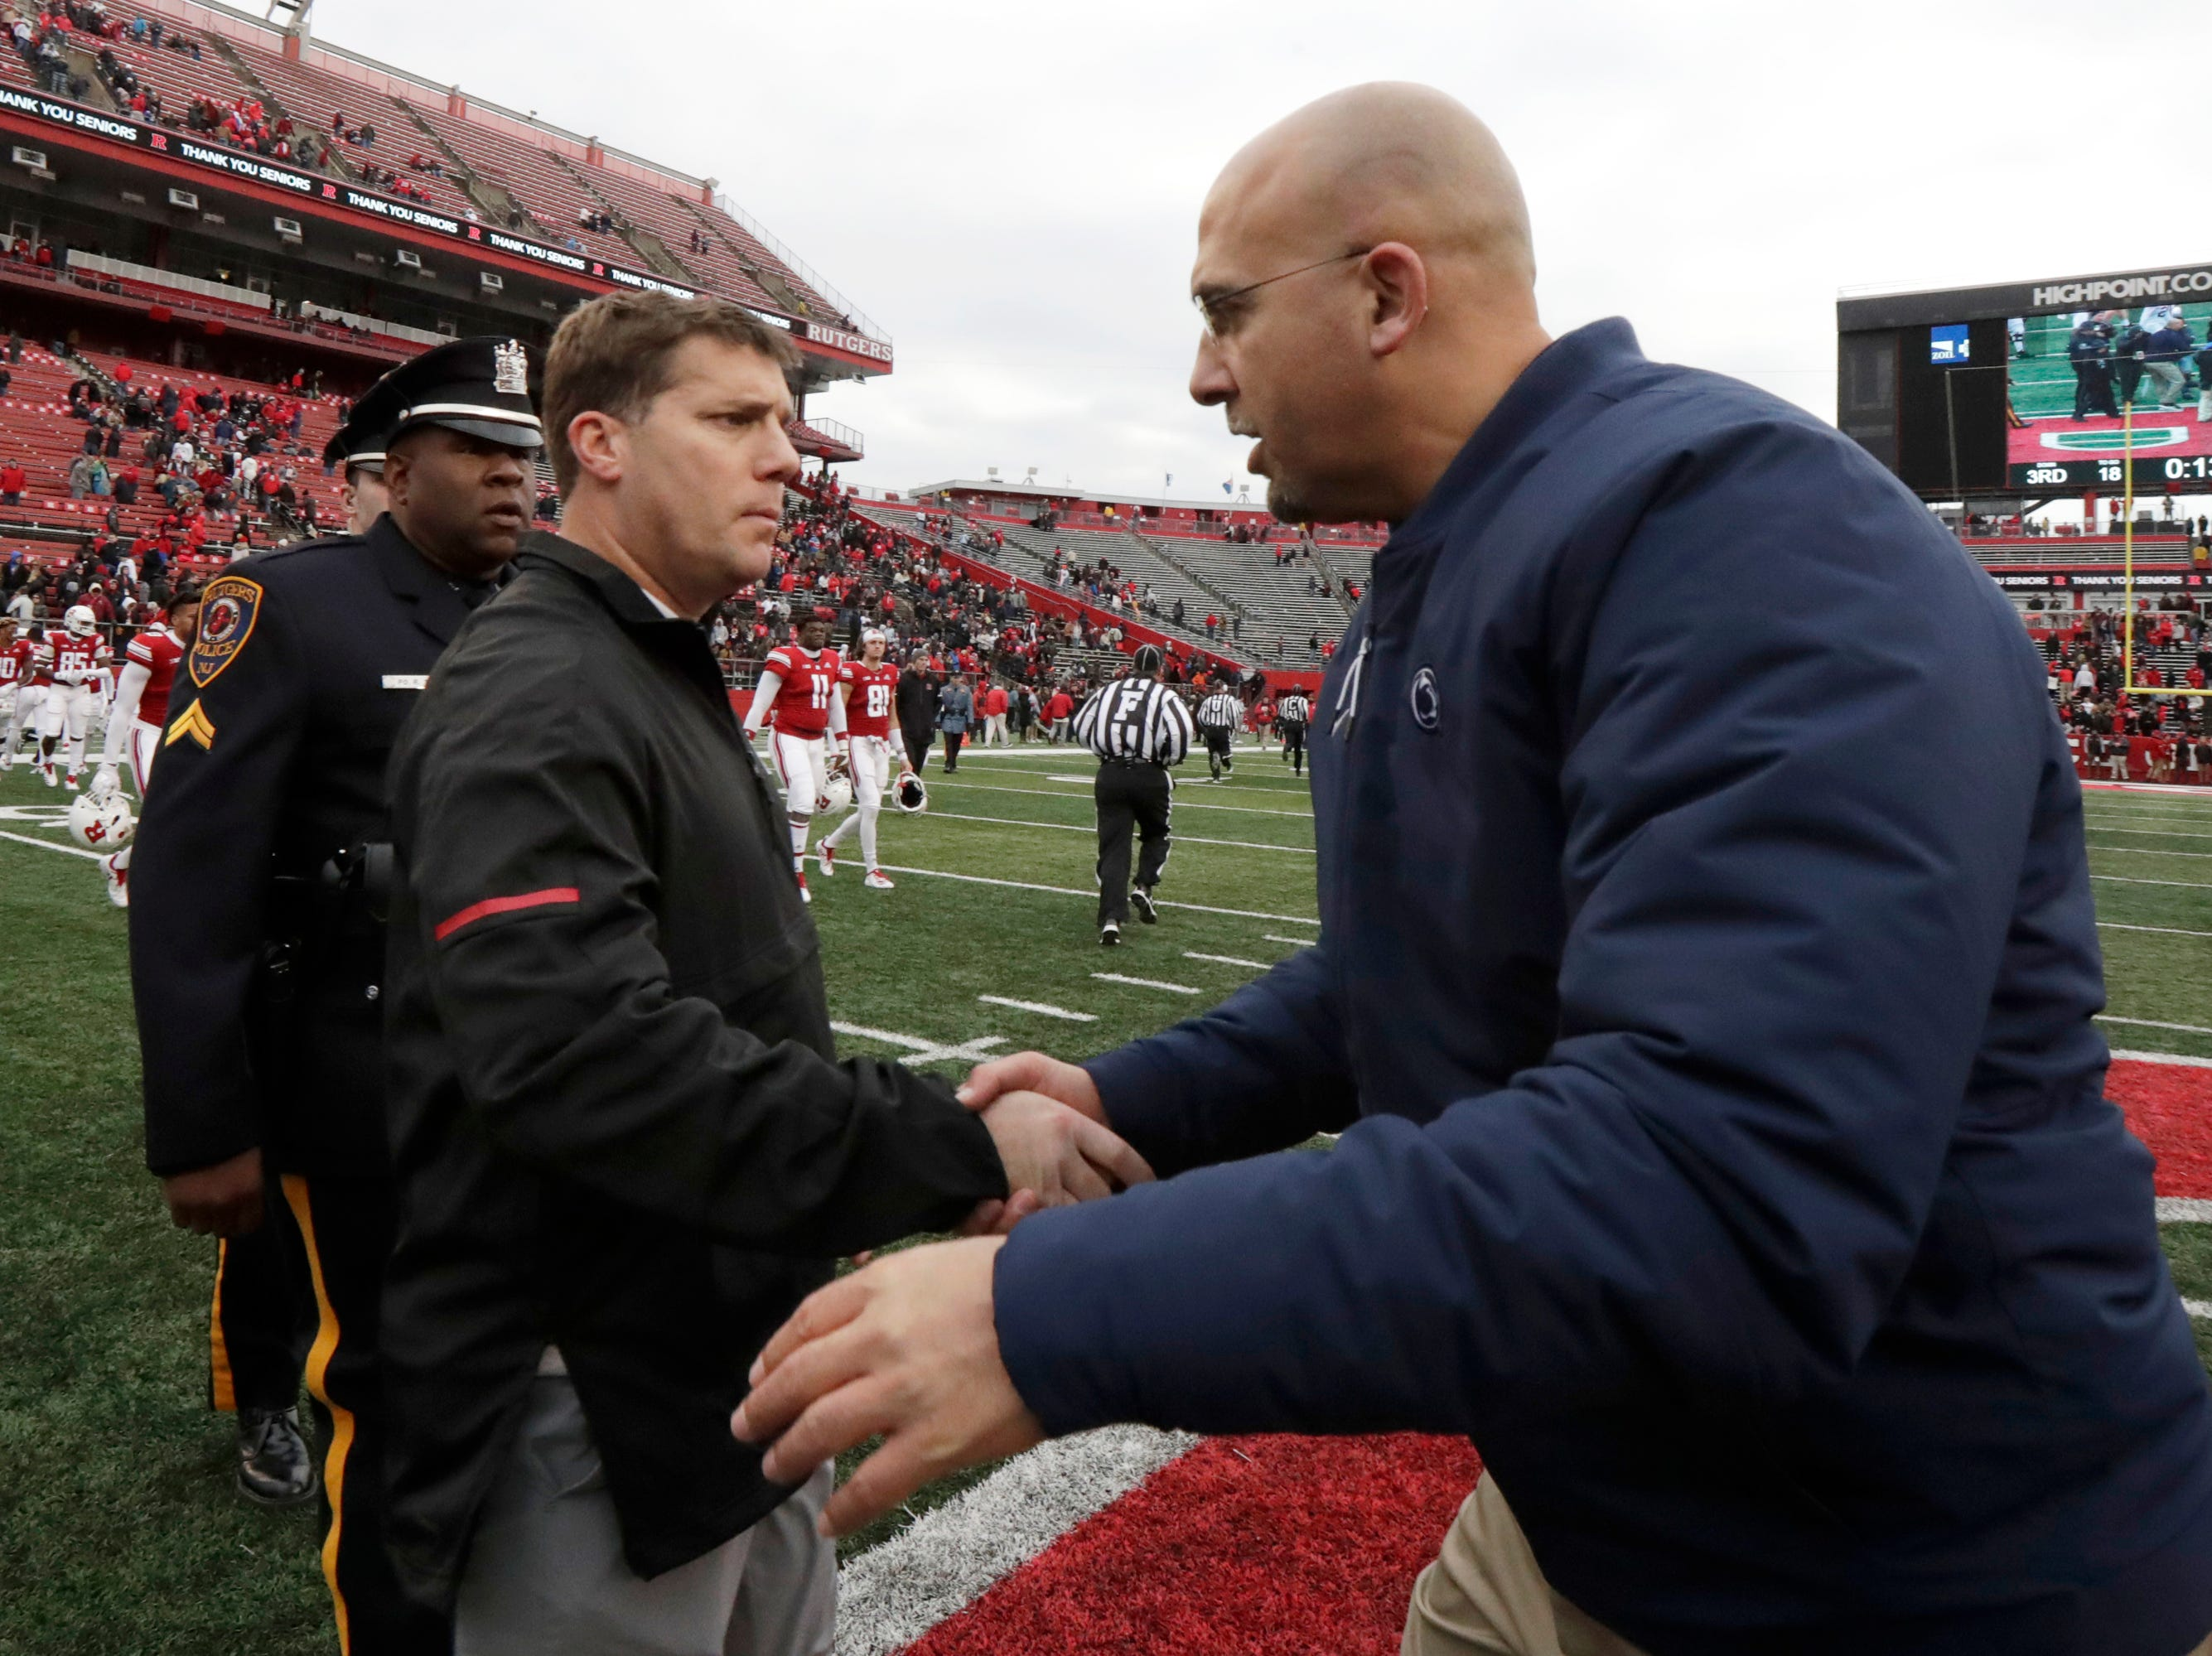 Rutgers head coach Chris Ash, left, shakes hands with Penn State head coach James Franklin after an NCAA college football game, Saturday, Nov. 17, 2018, in Piscataway, N.J. Penn State won 20-7. (AP Photo/Julio Cortez)